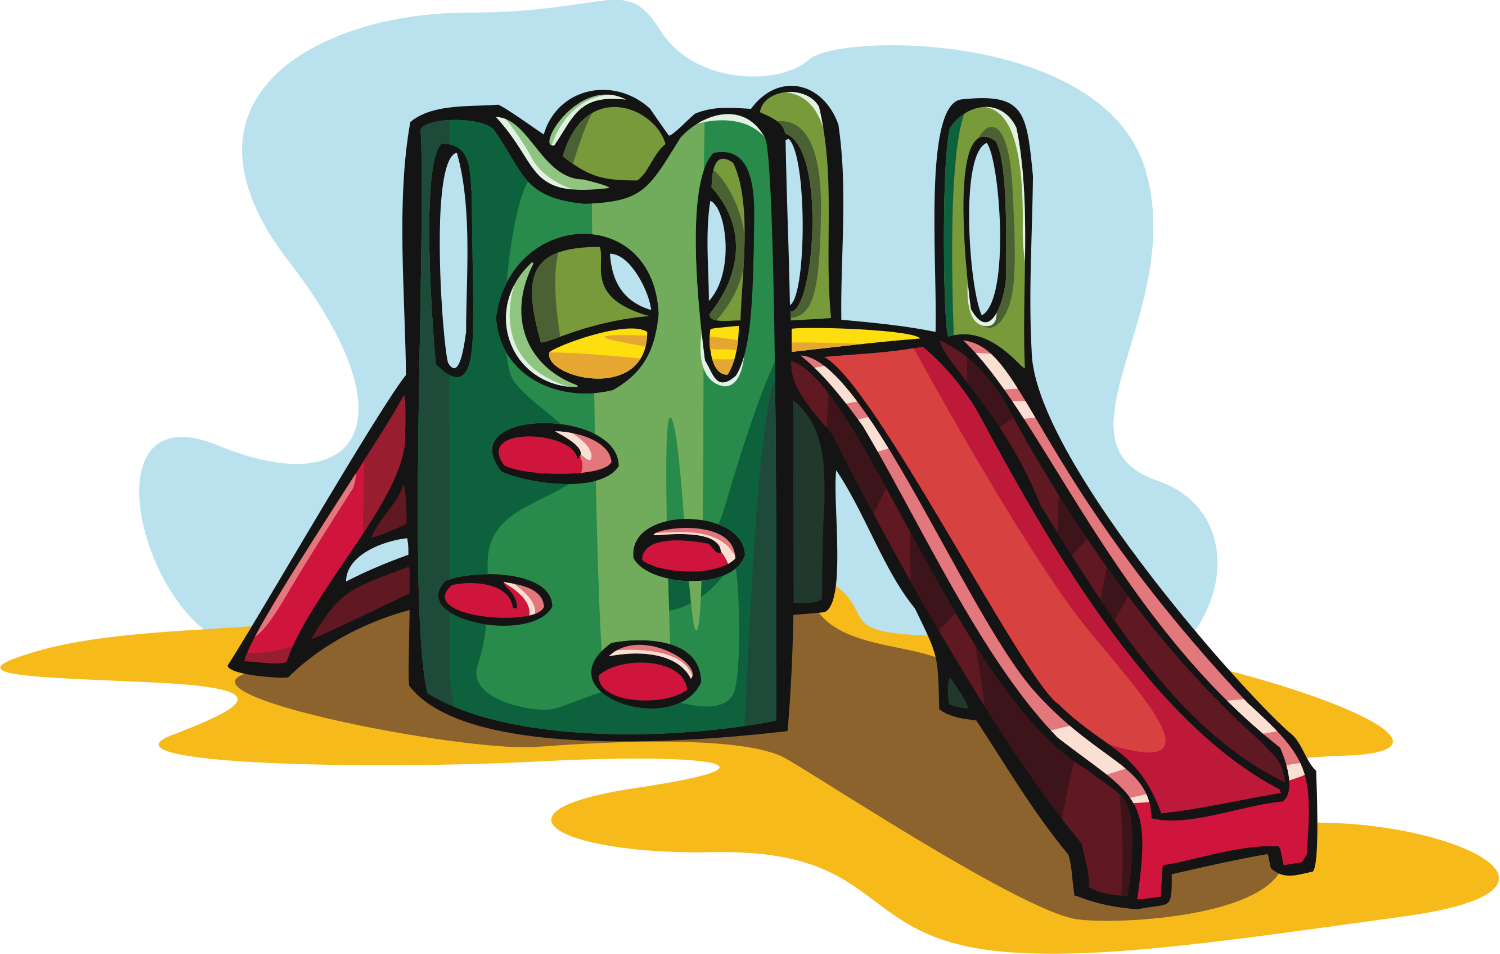 Playground Clipart - ClipArt Best